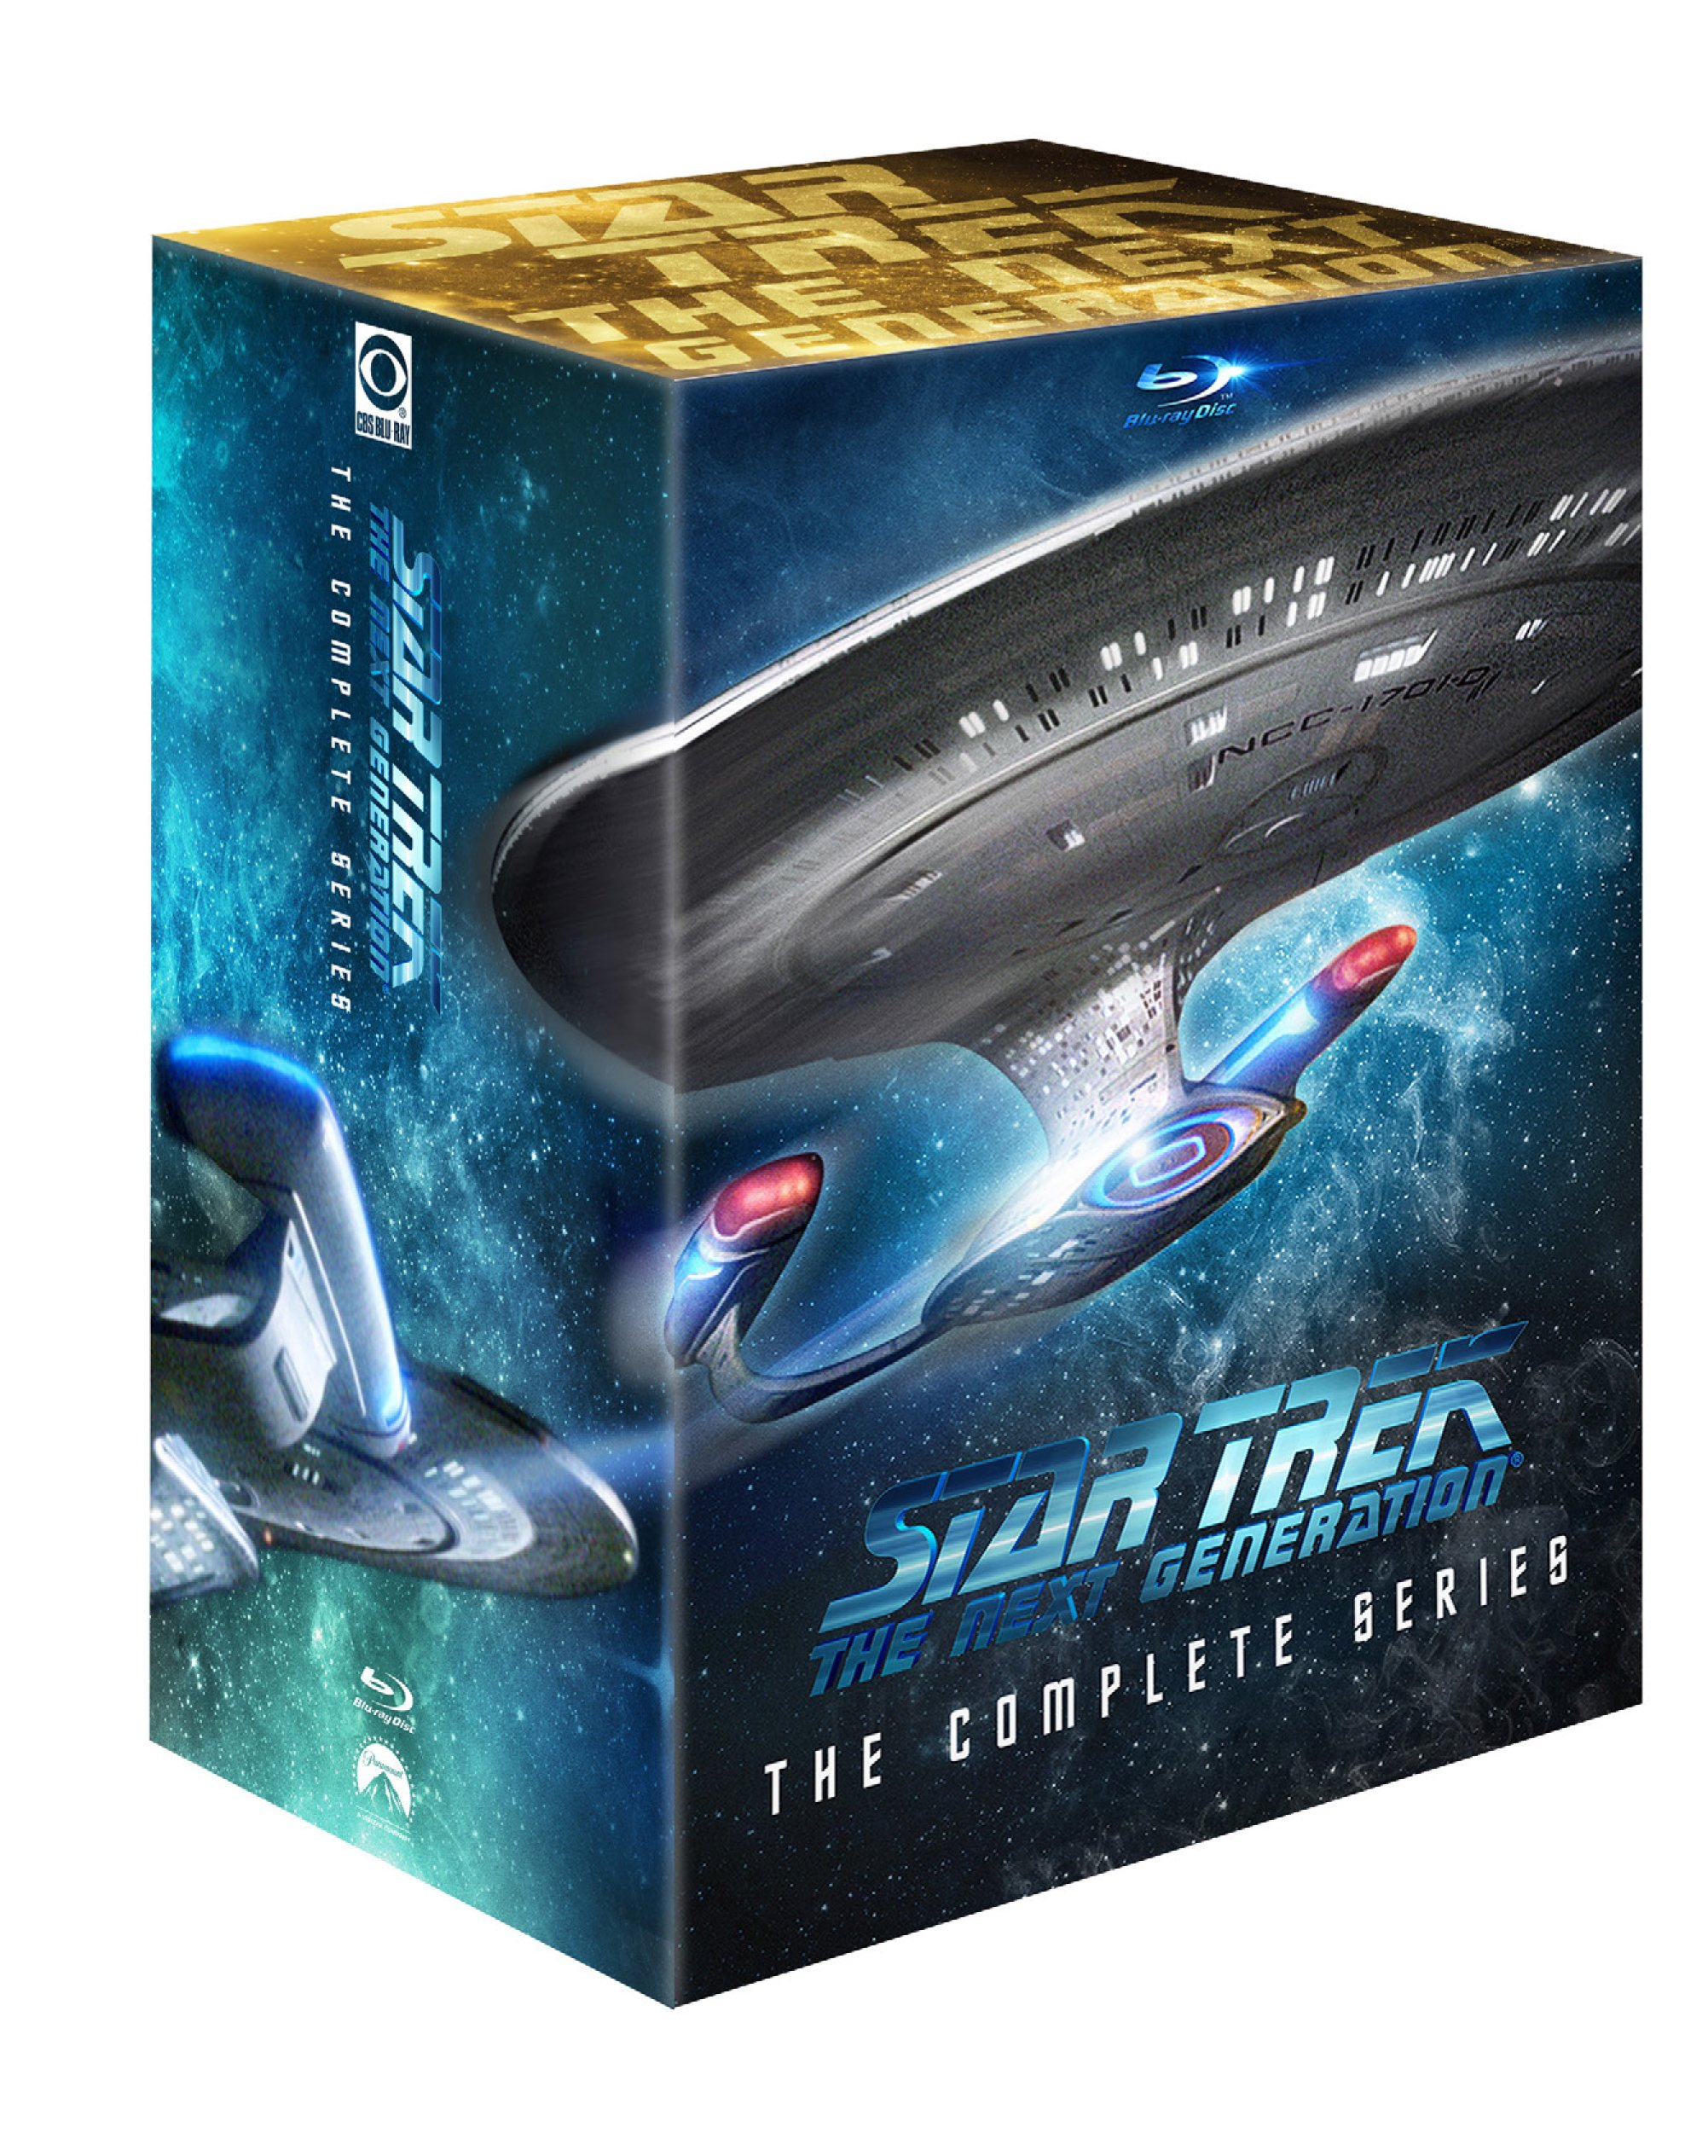 Star Trek: The Next Generation - The Complete Series [Blu-ray] by Paramount